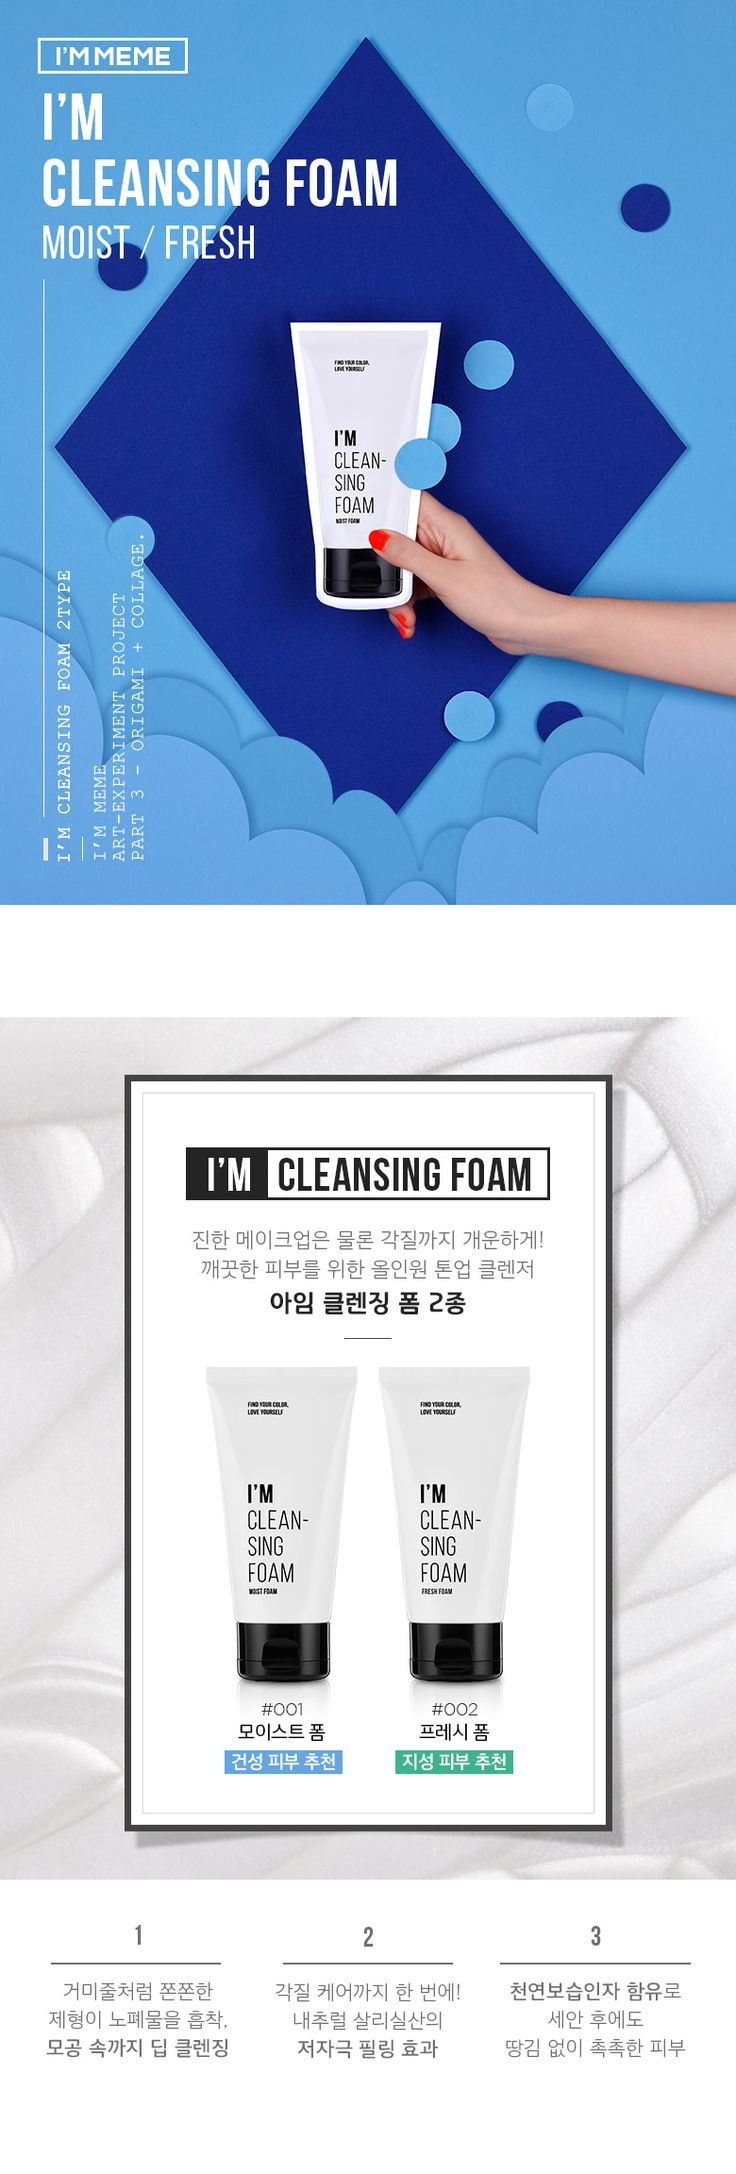 Immeme_I%27M-CLEANSING-FOAM_Con_01.jpg 그림자